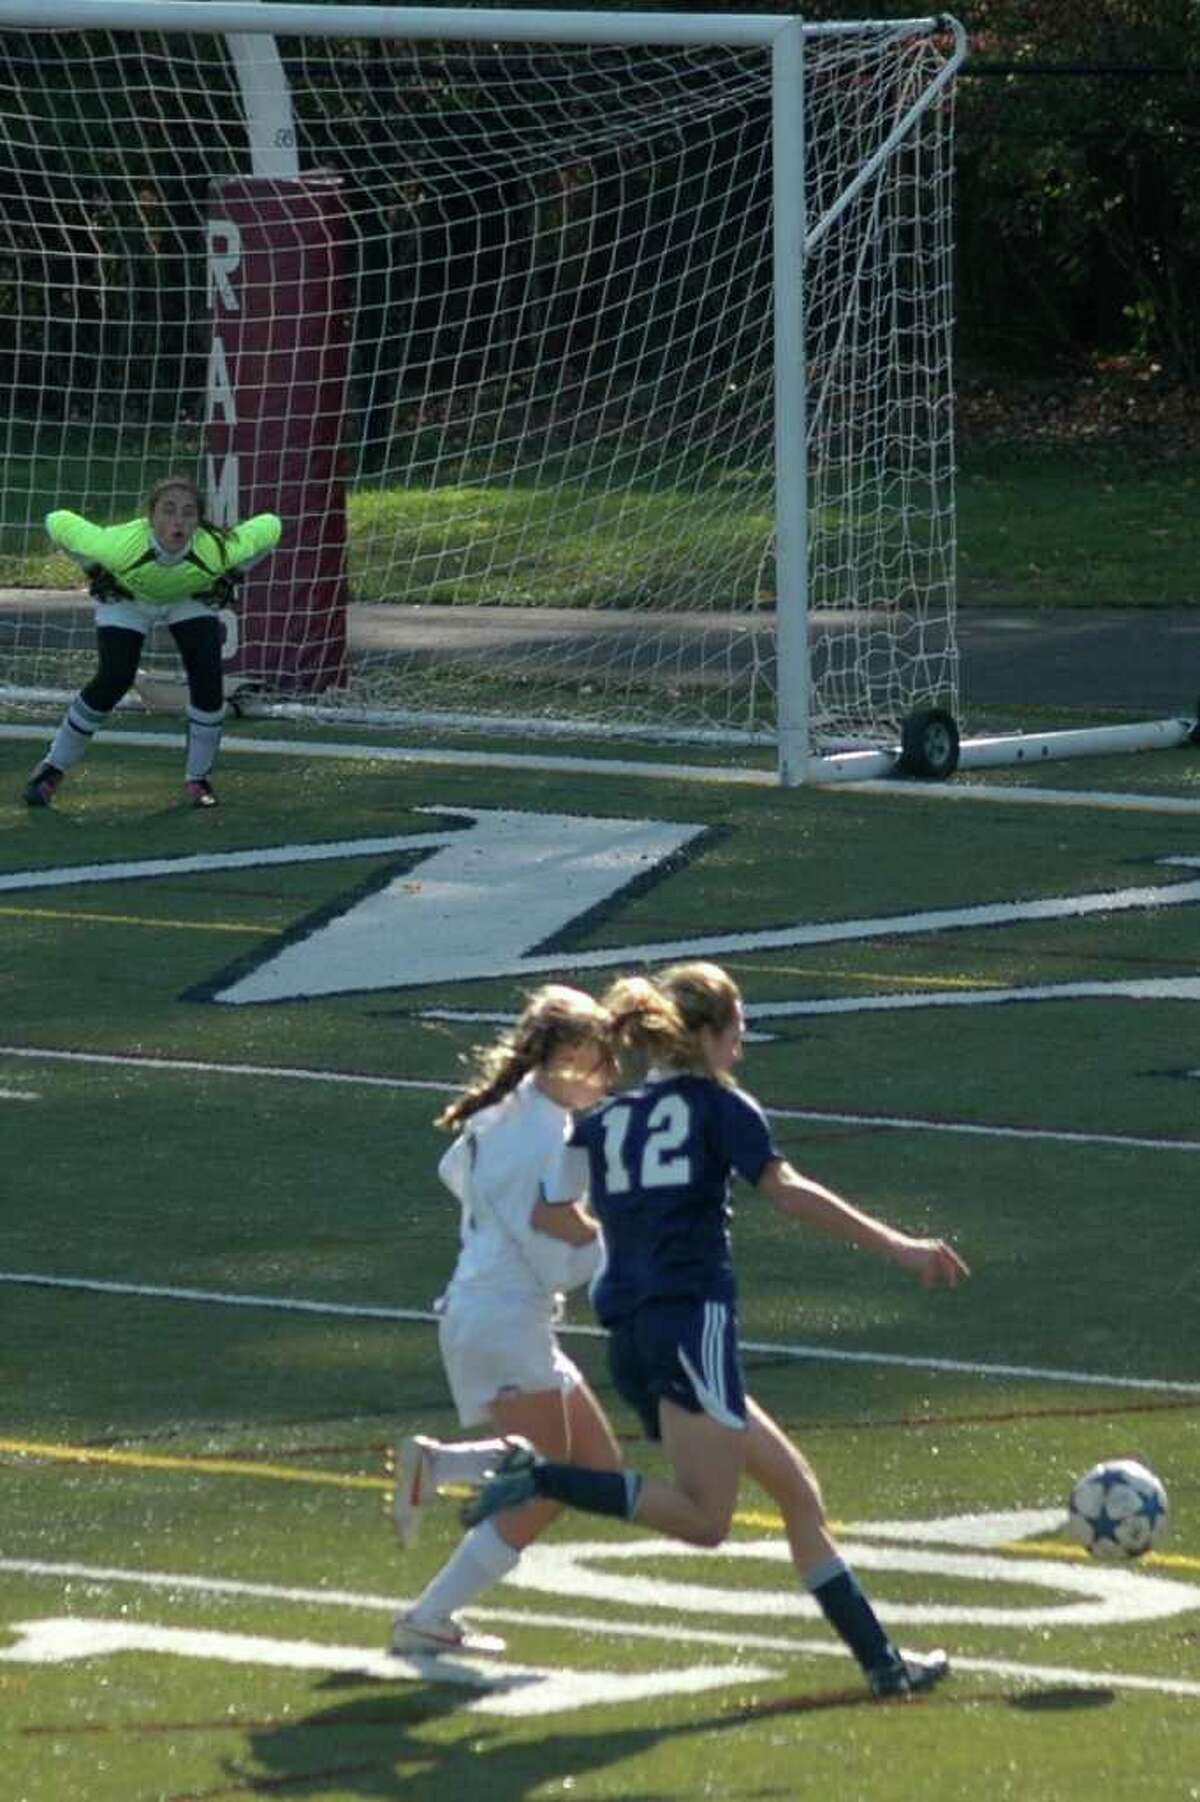 Staples senior tri-captain Jaclyn Katz eludes a New Canaan defender on Saturday in the FCIAC quarterfinals. Katz scored three goals in leading the sixth-seeded Lady Wreckers to a 4-1 victory.